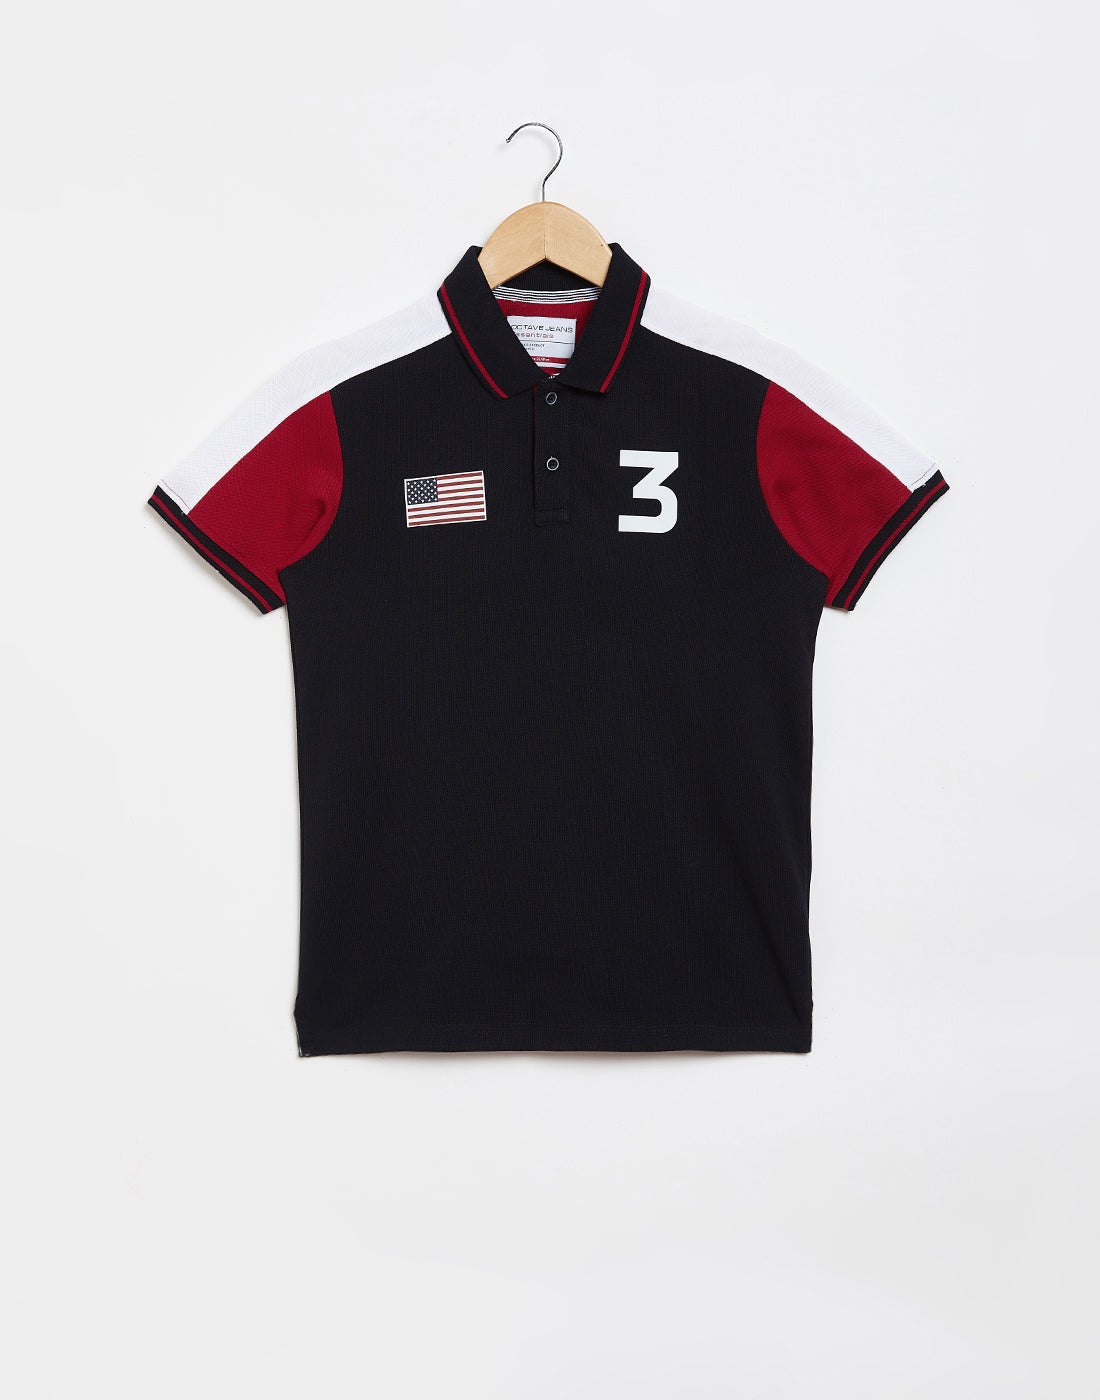 Octave Boys Navy Printed Polo Tshirt